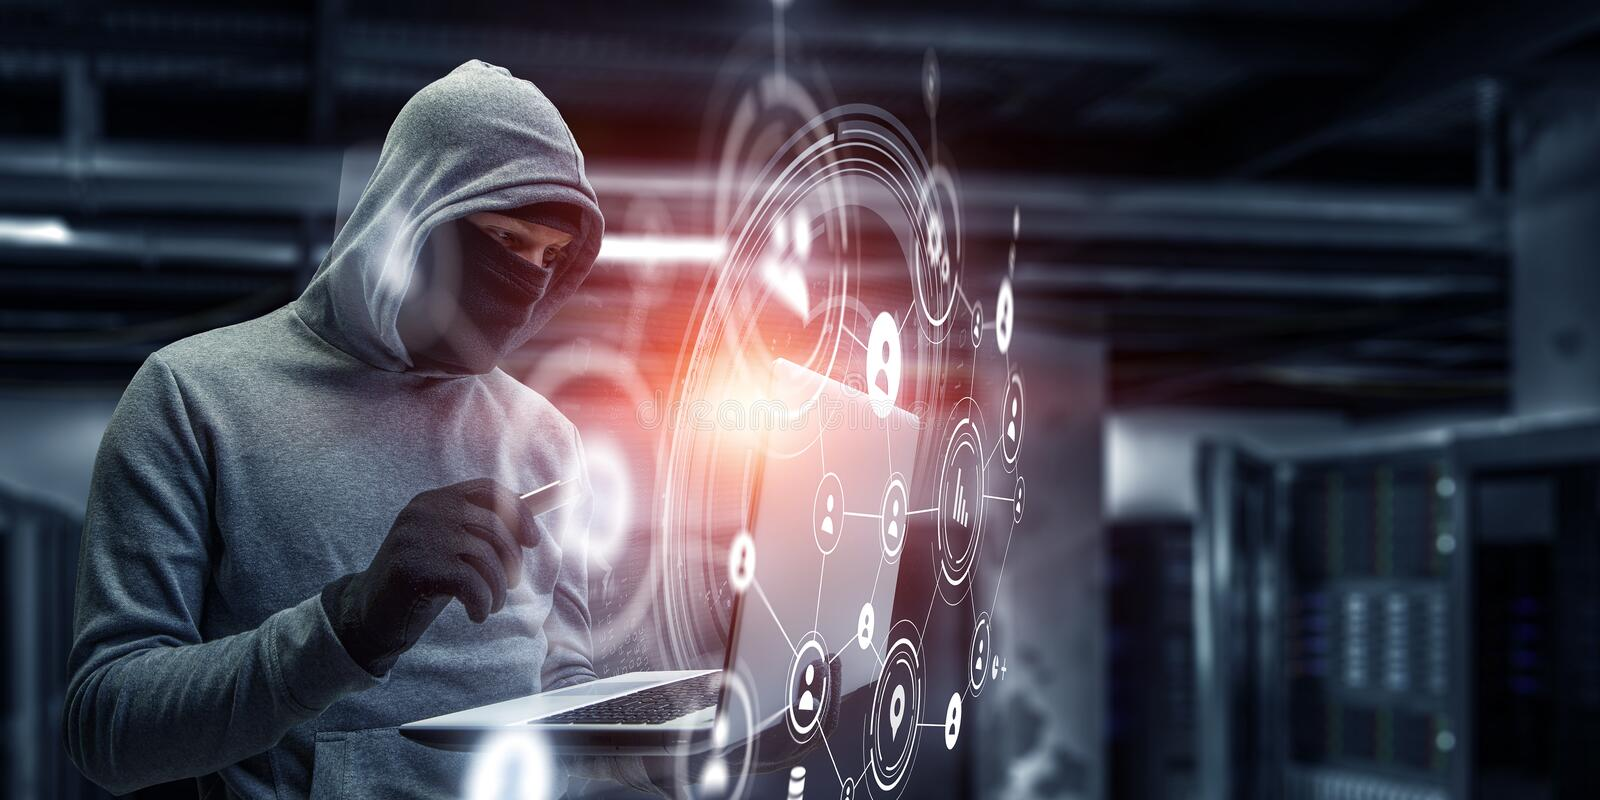 Network security and privacy crime. Mixed media. Computer hacker in hoodie and mask stealing data from laptop. Mixed media royalty free stock images